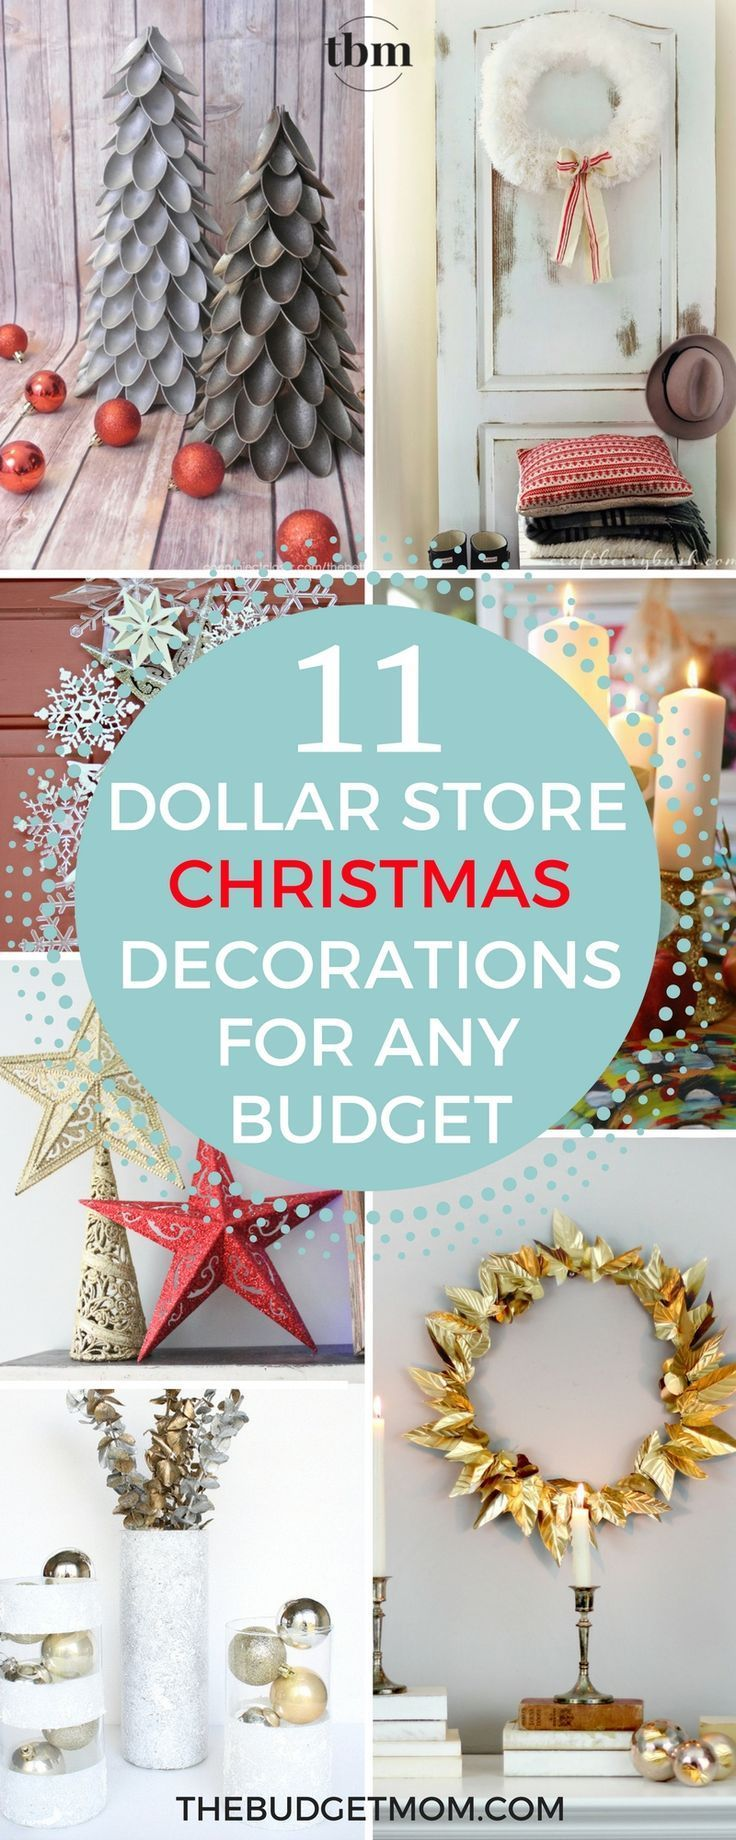 11 Glamorous Dollar Store Christmas Decorations For Any Budget